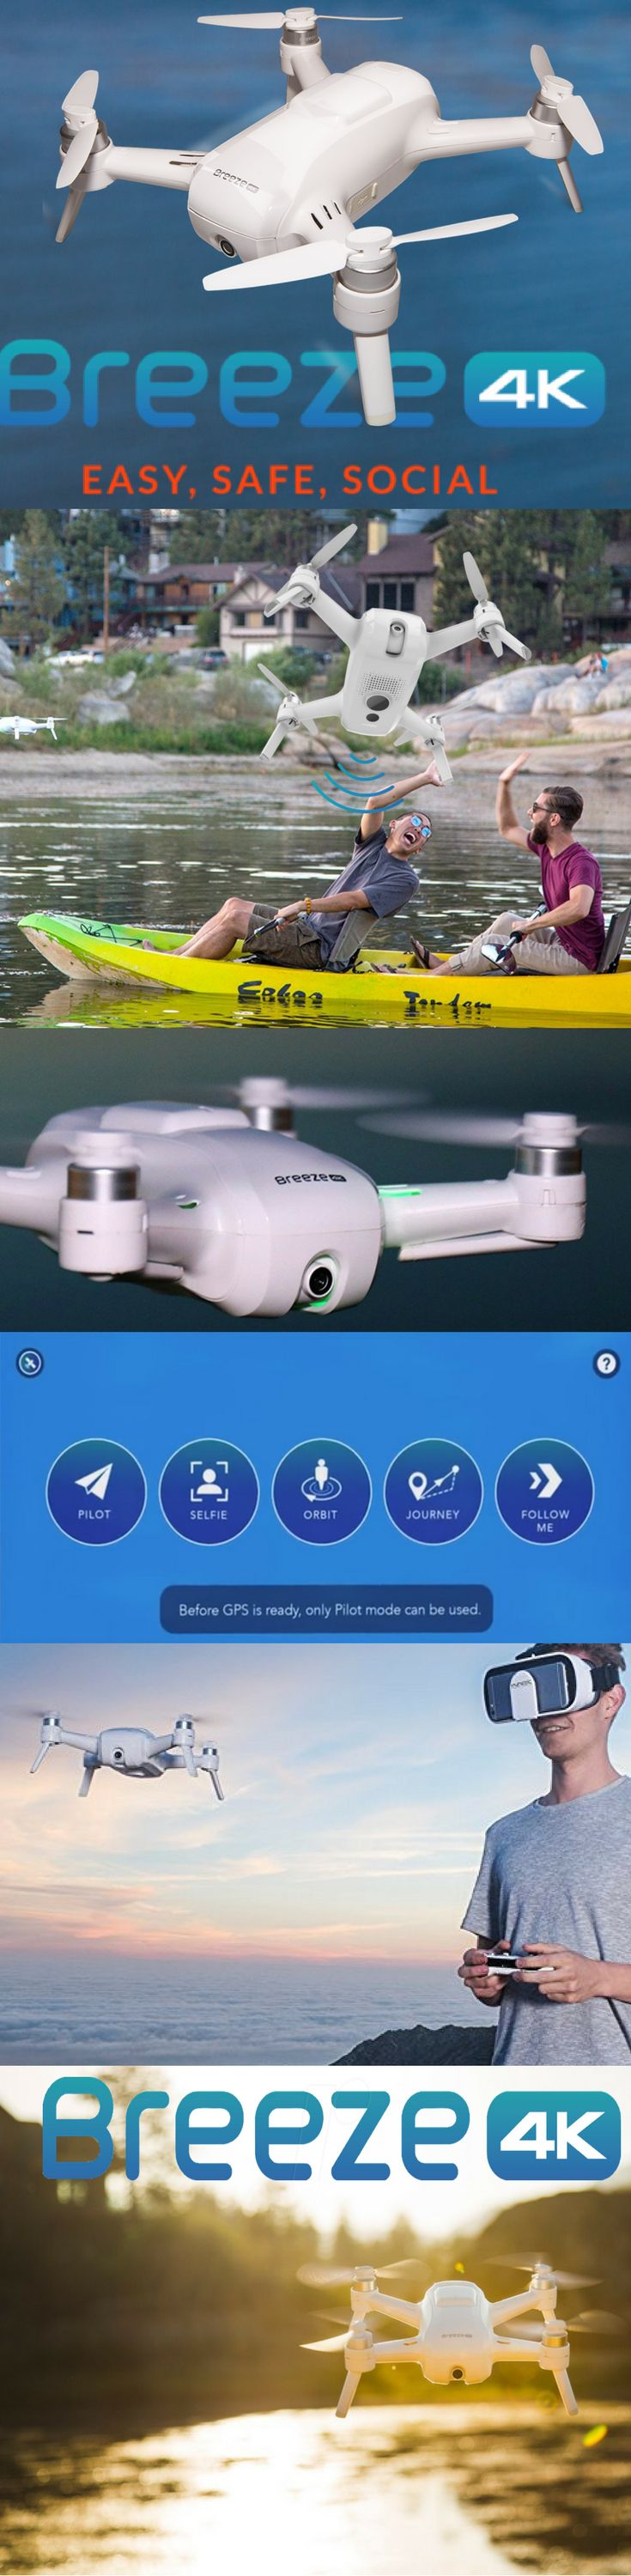 Yuneec Breeze 4k Selfie Drone You can easily store your Yuneec selfie drone in almost and size bag. The integrated and pivotable 4K UHD camera captures beautiful sharp selfies, aerial pics and snapshots.